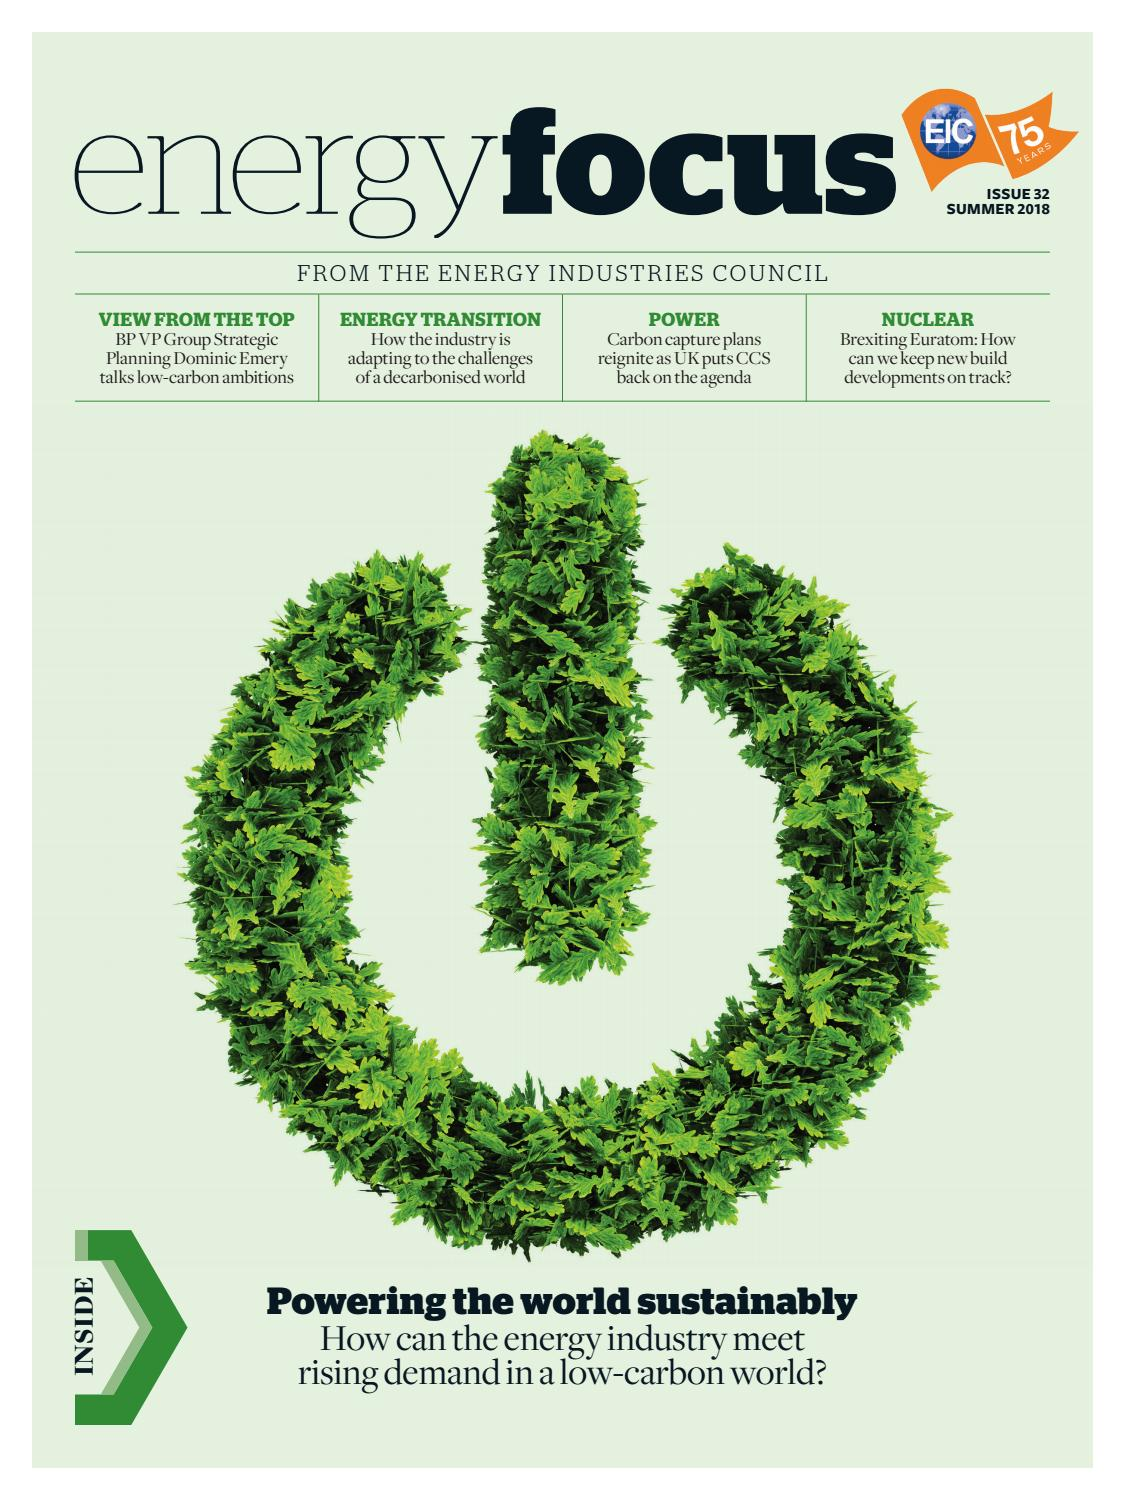 Energy Focus Summer 2018 by Energy Industries Council - issuu